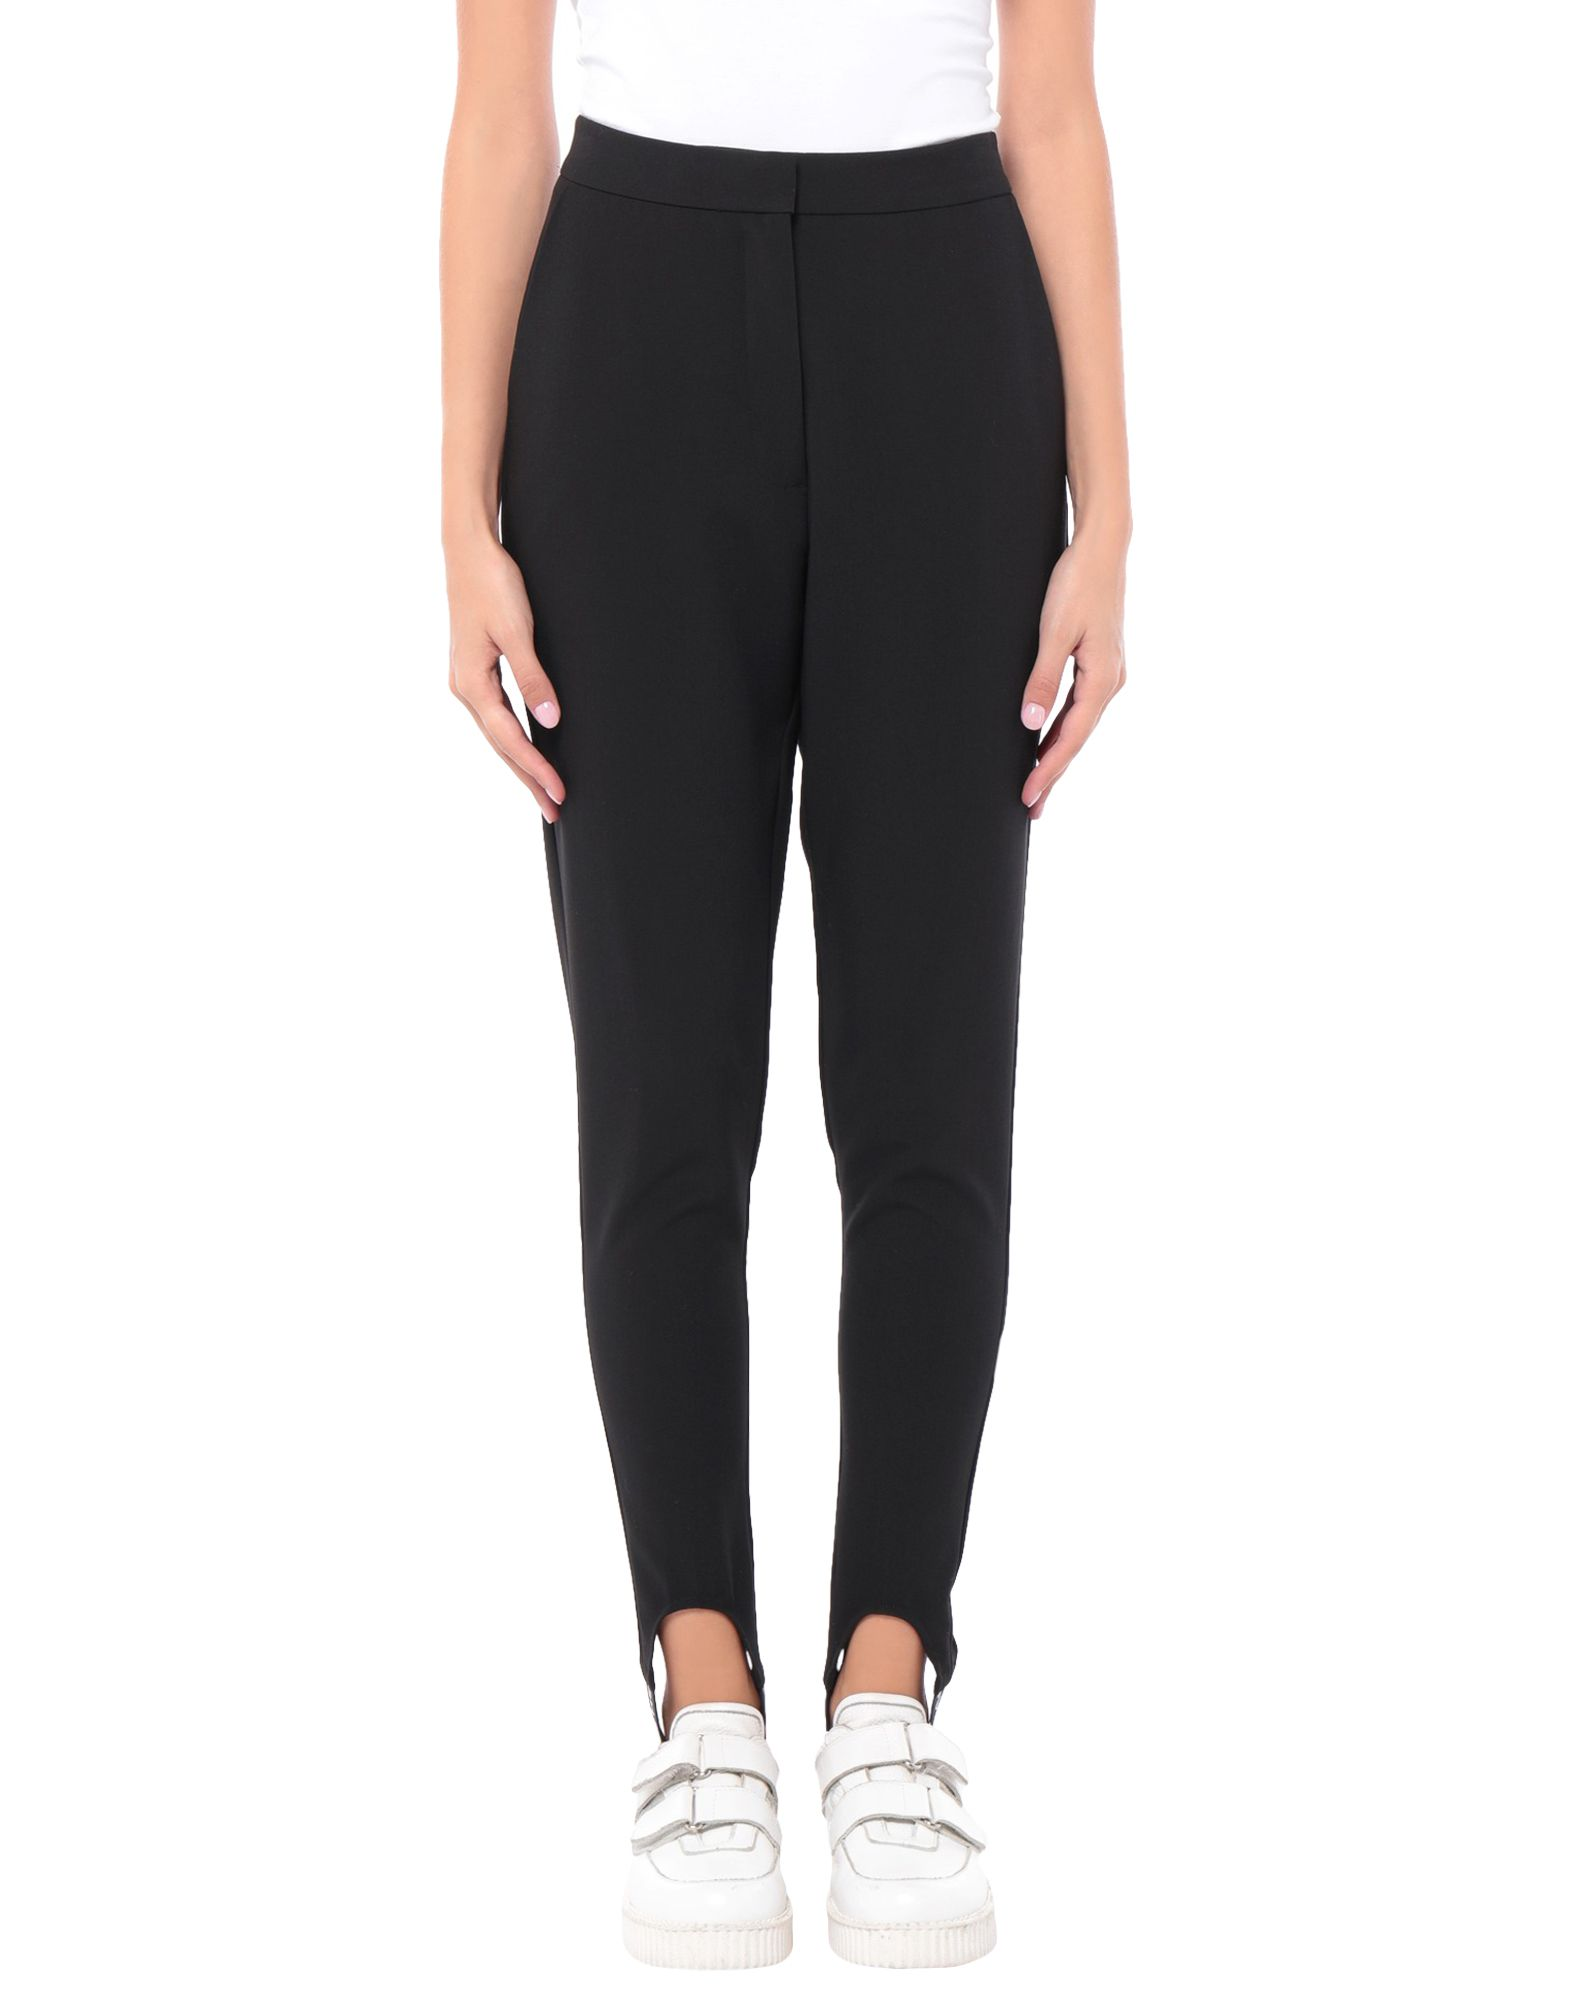 ASH STUDIO PARIS Casual pants. plain weave, basic solid color, logo, high waisted, regular fit, tapered leg, hook-and-bar, zip, multipockets, with elastic bottom, stretch. 74% Polyester, 20% Rayon, 6% Elastane